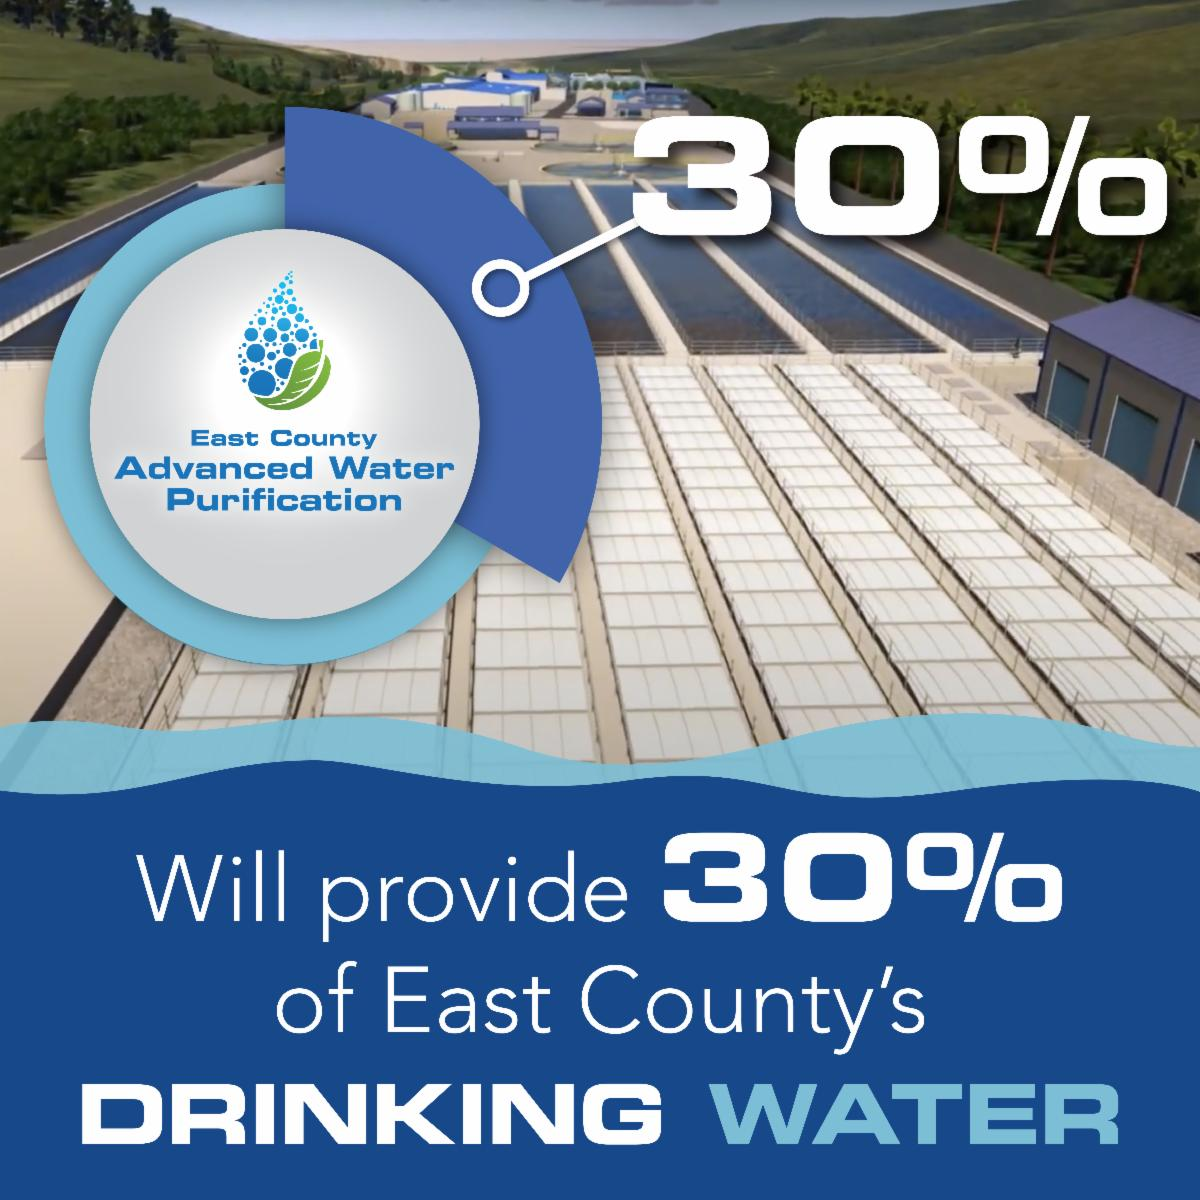 Will provide 30% of east county's drinking water - graphic